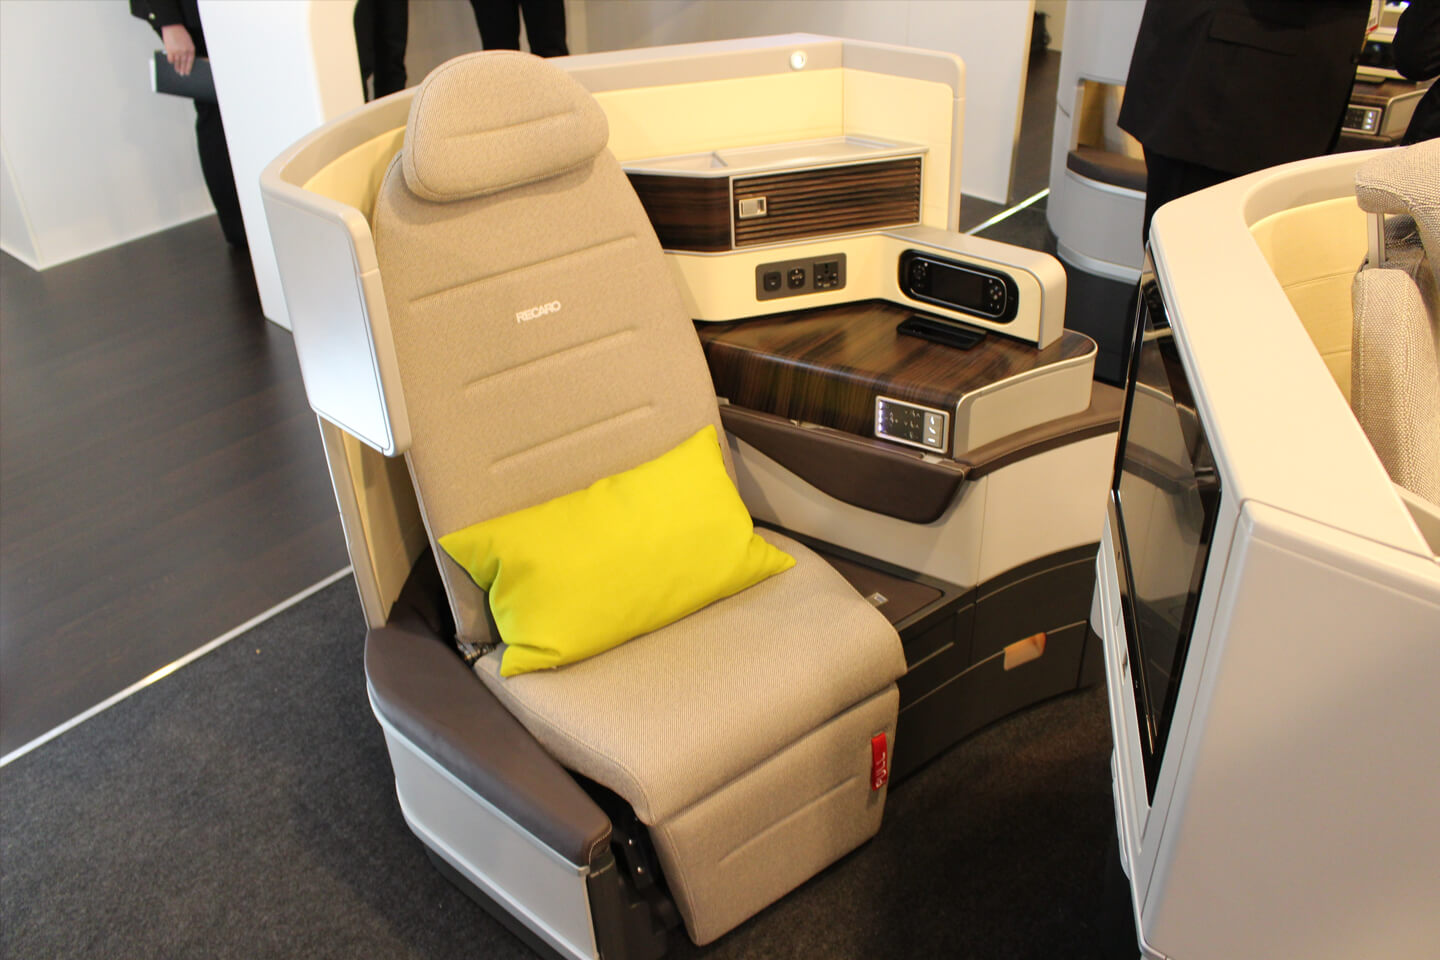 Recaro Aircraft Seating GmbH